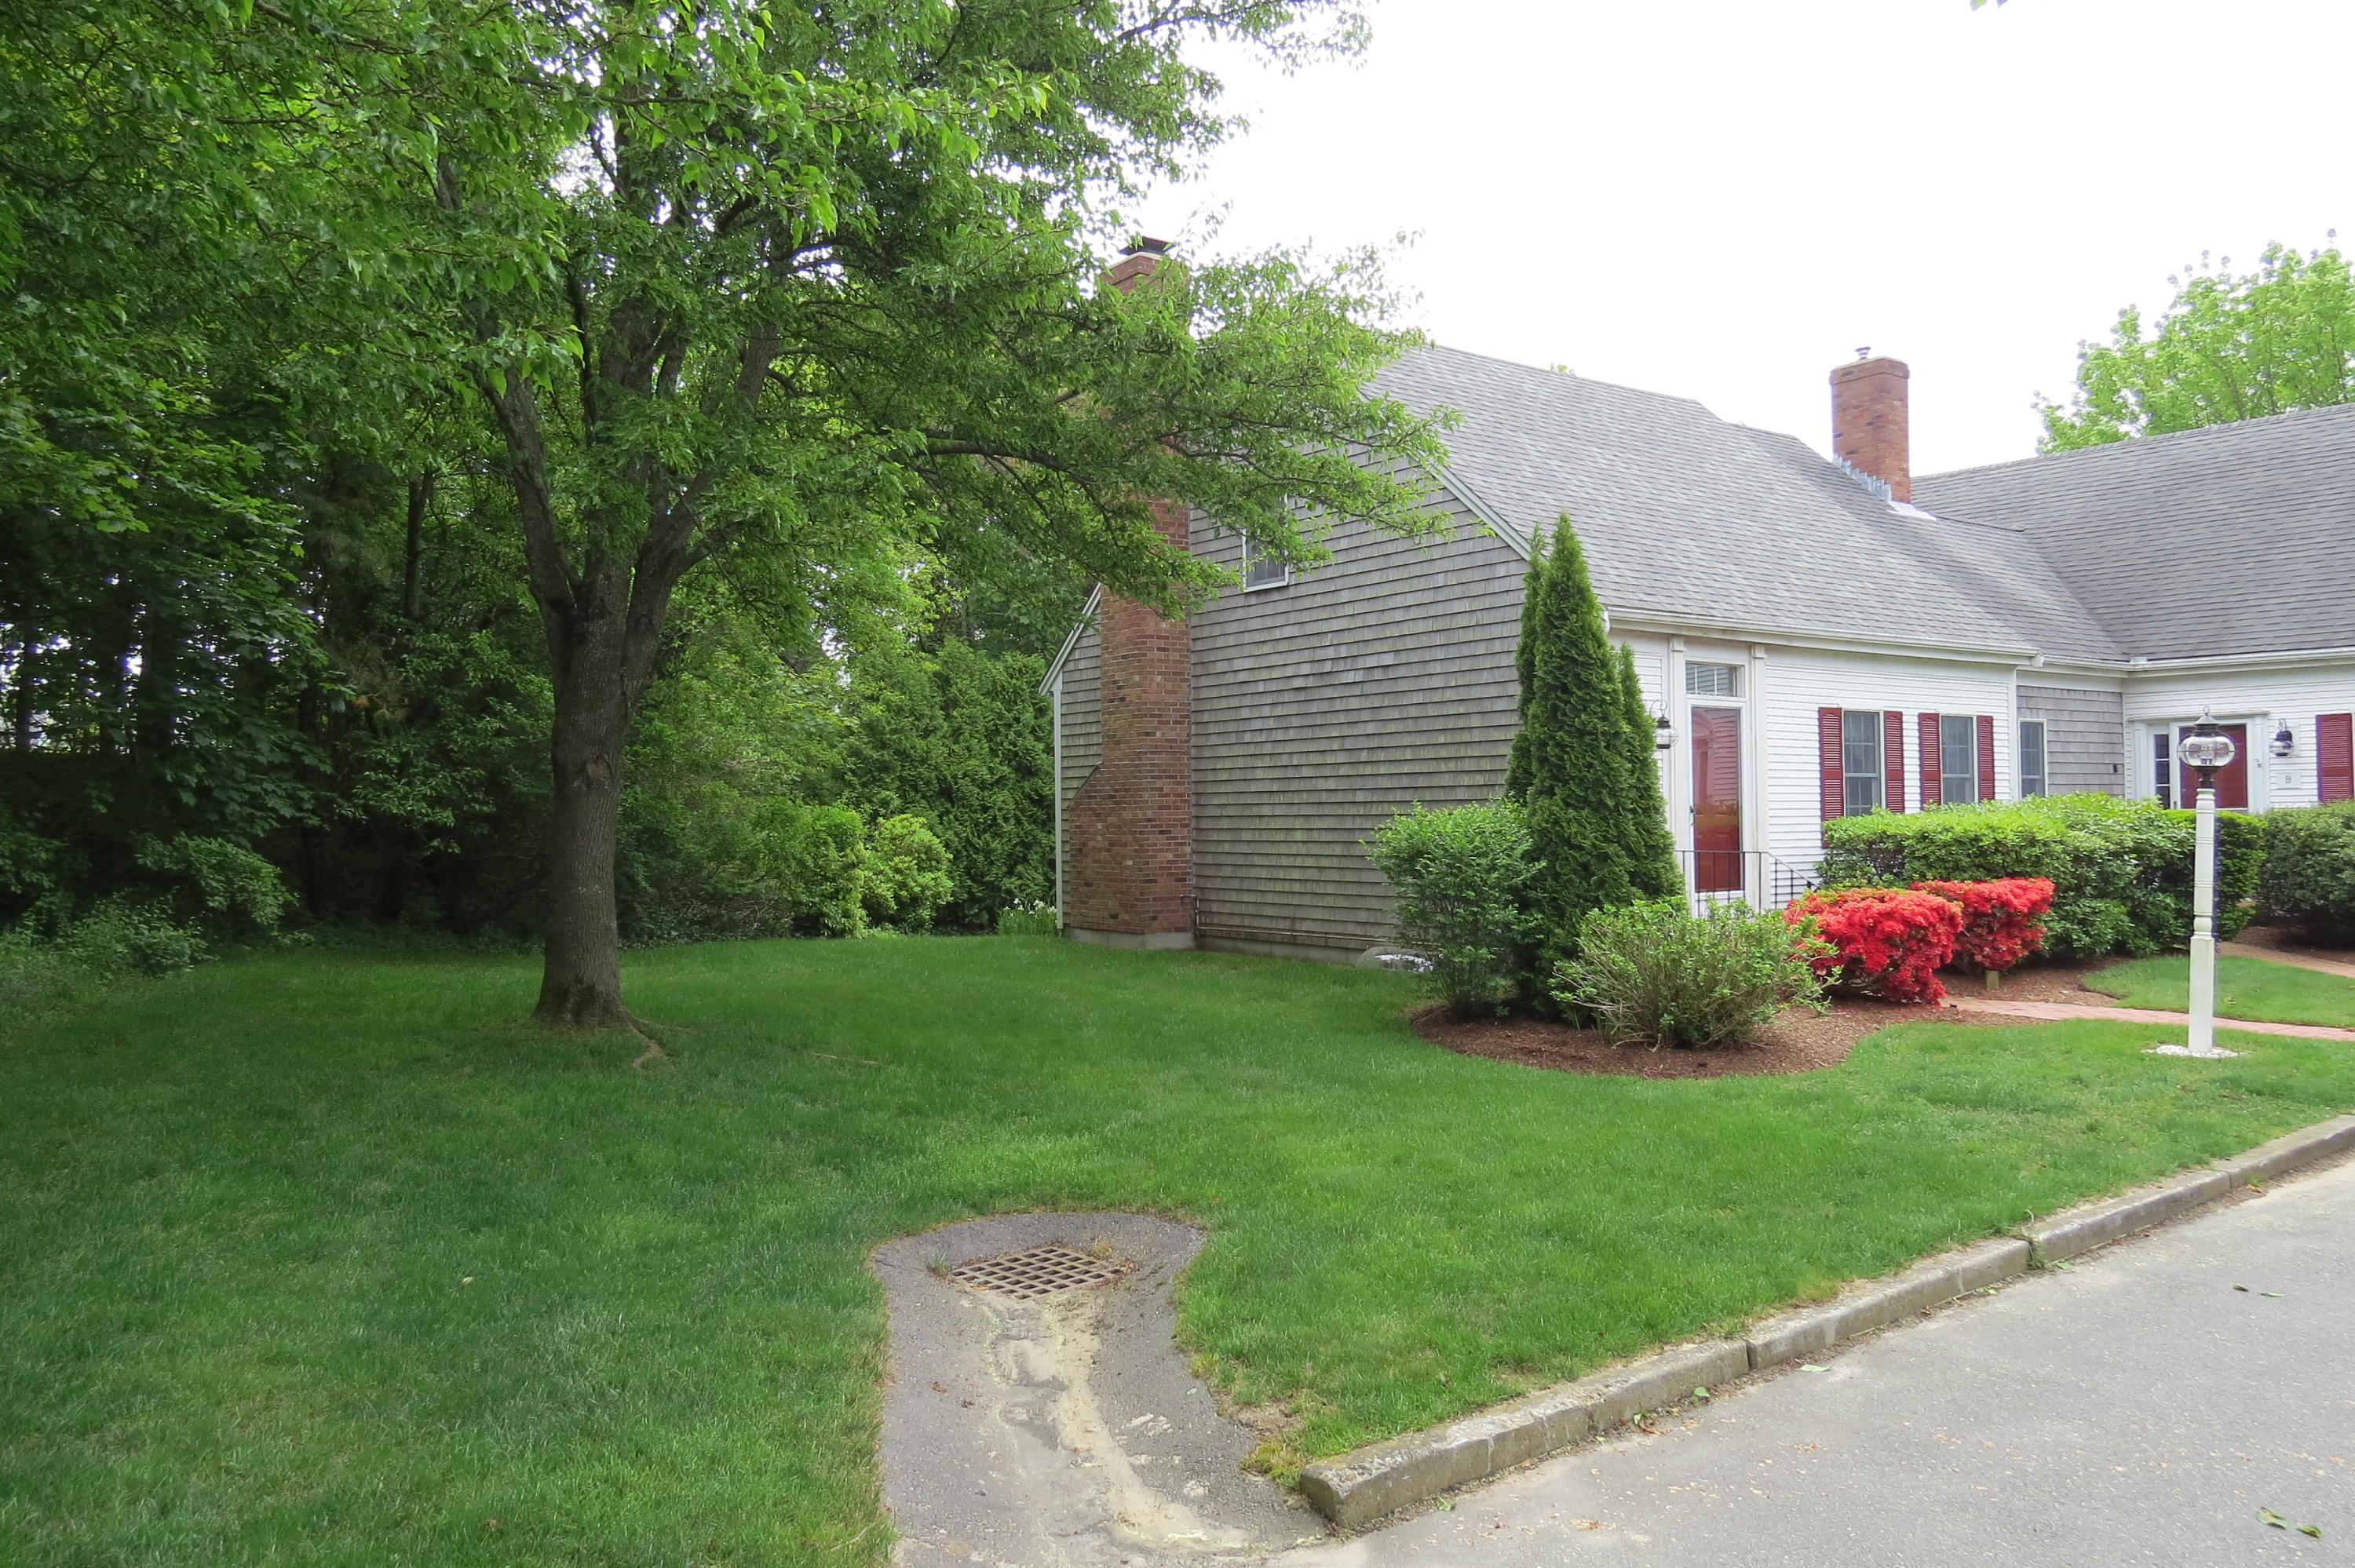 367-orleans-road-north-chatham-ma-02650